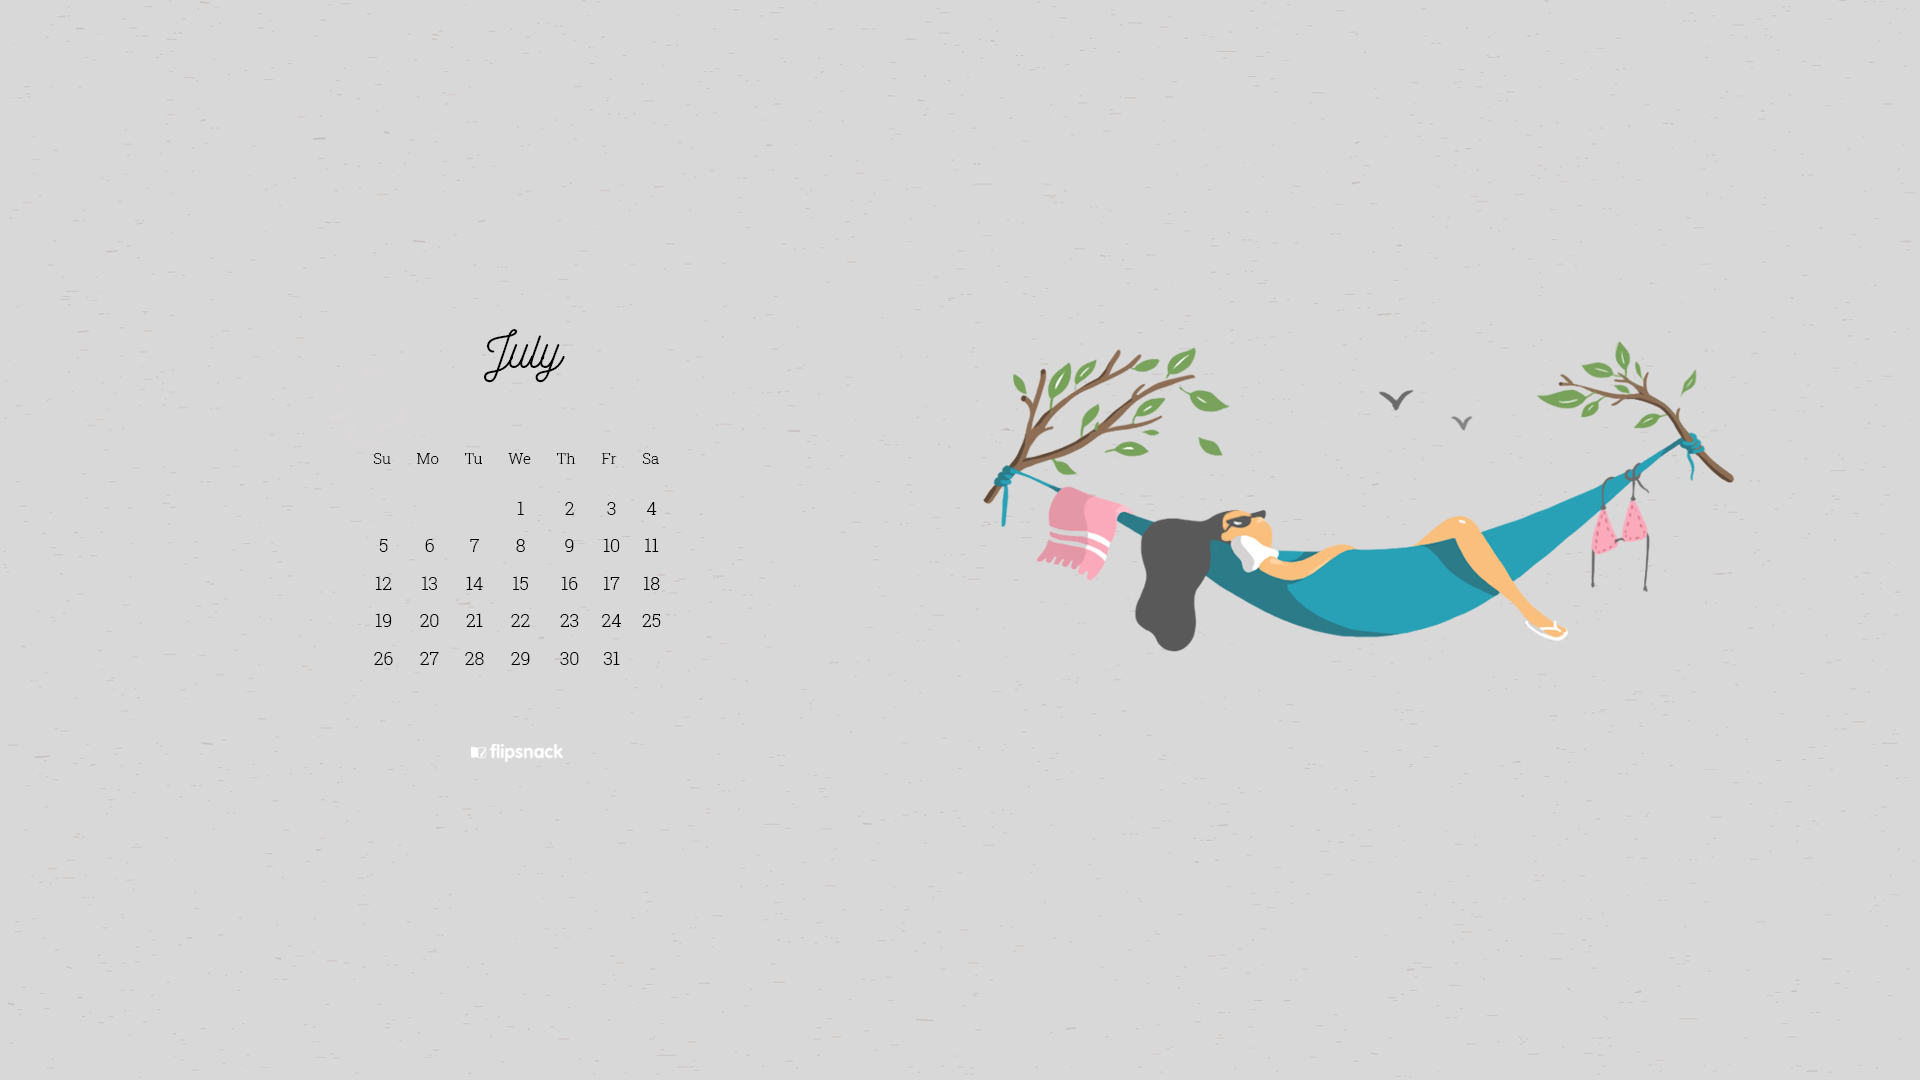 July 2020 wallpaper calendars